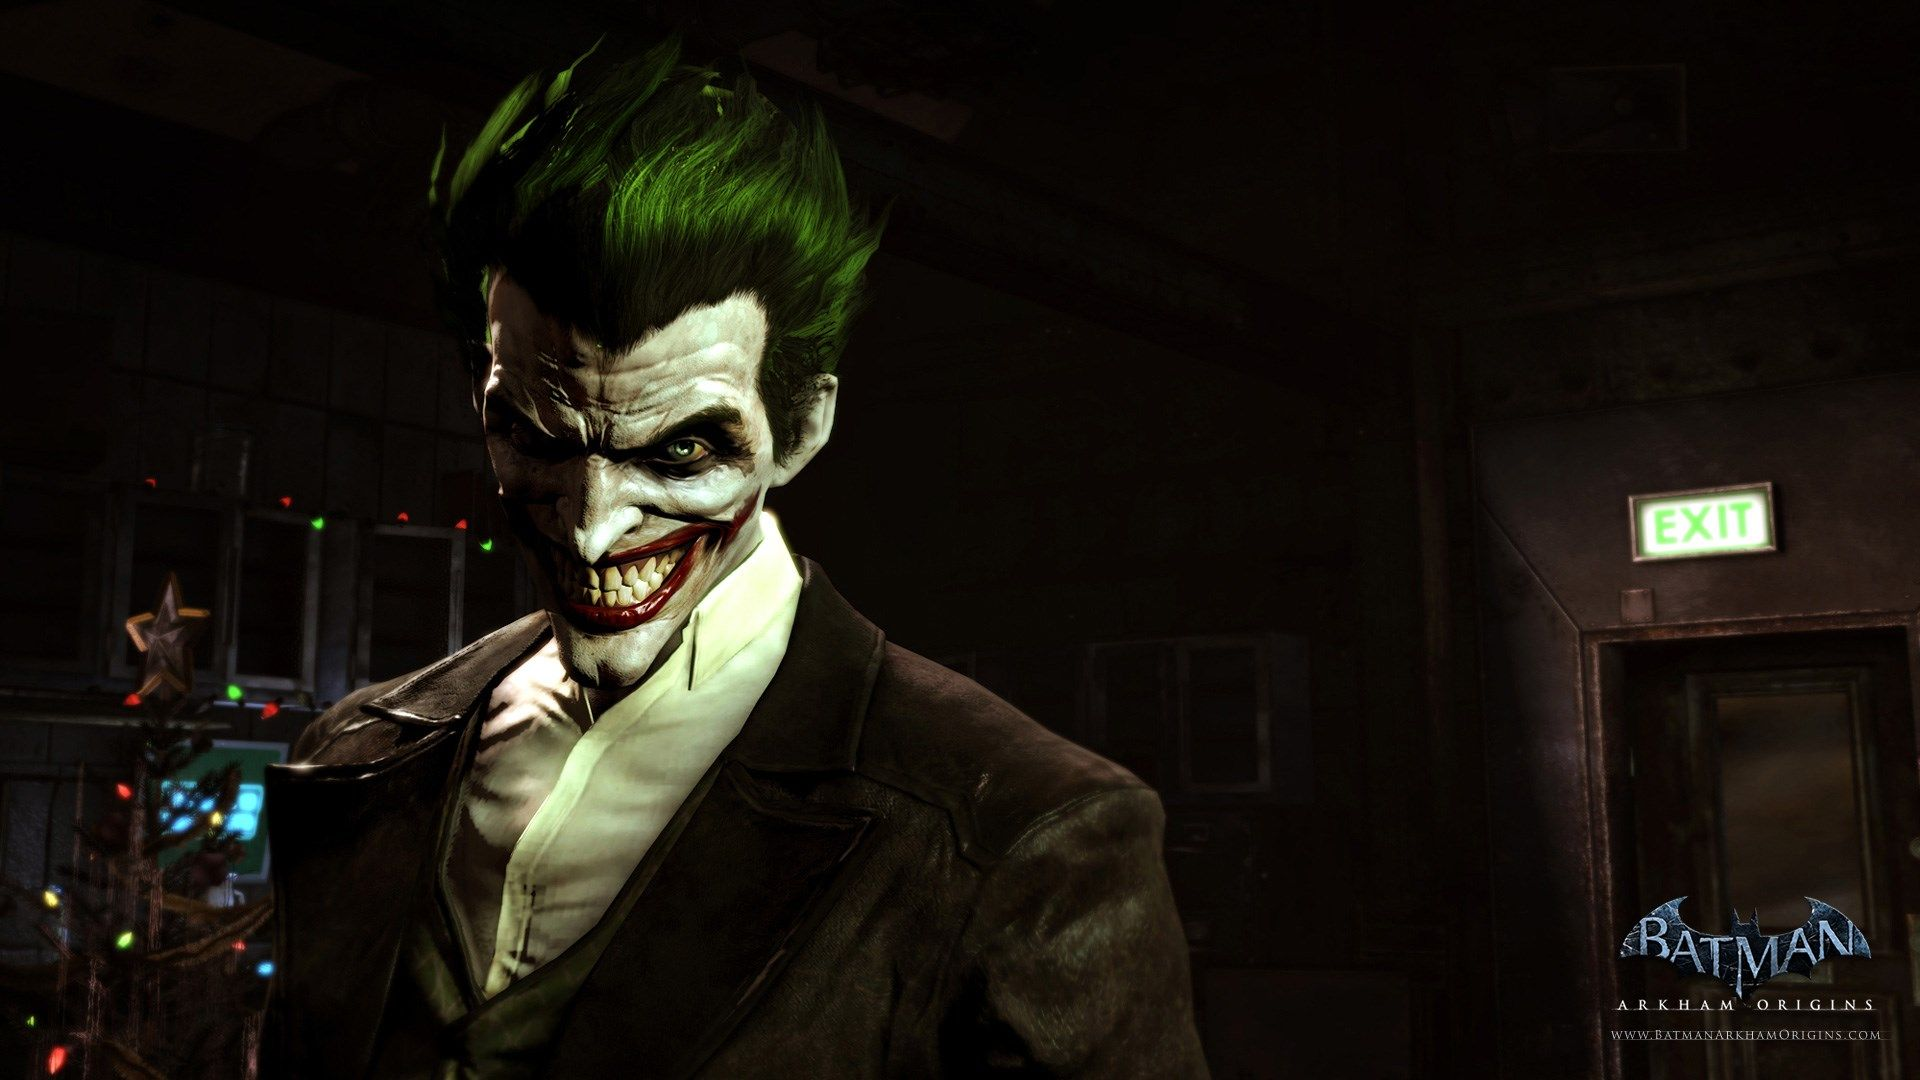 Joker Wallpaper Widescreen images in Collection Page